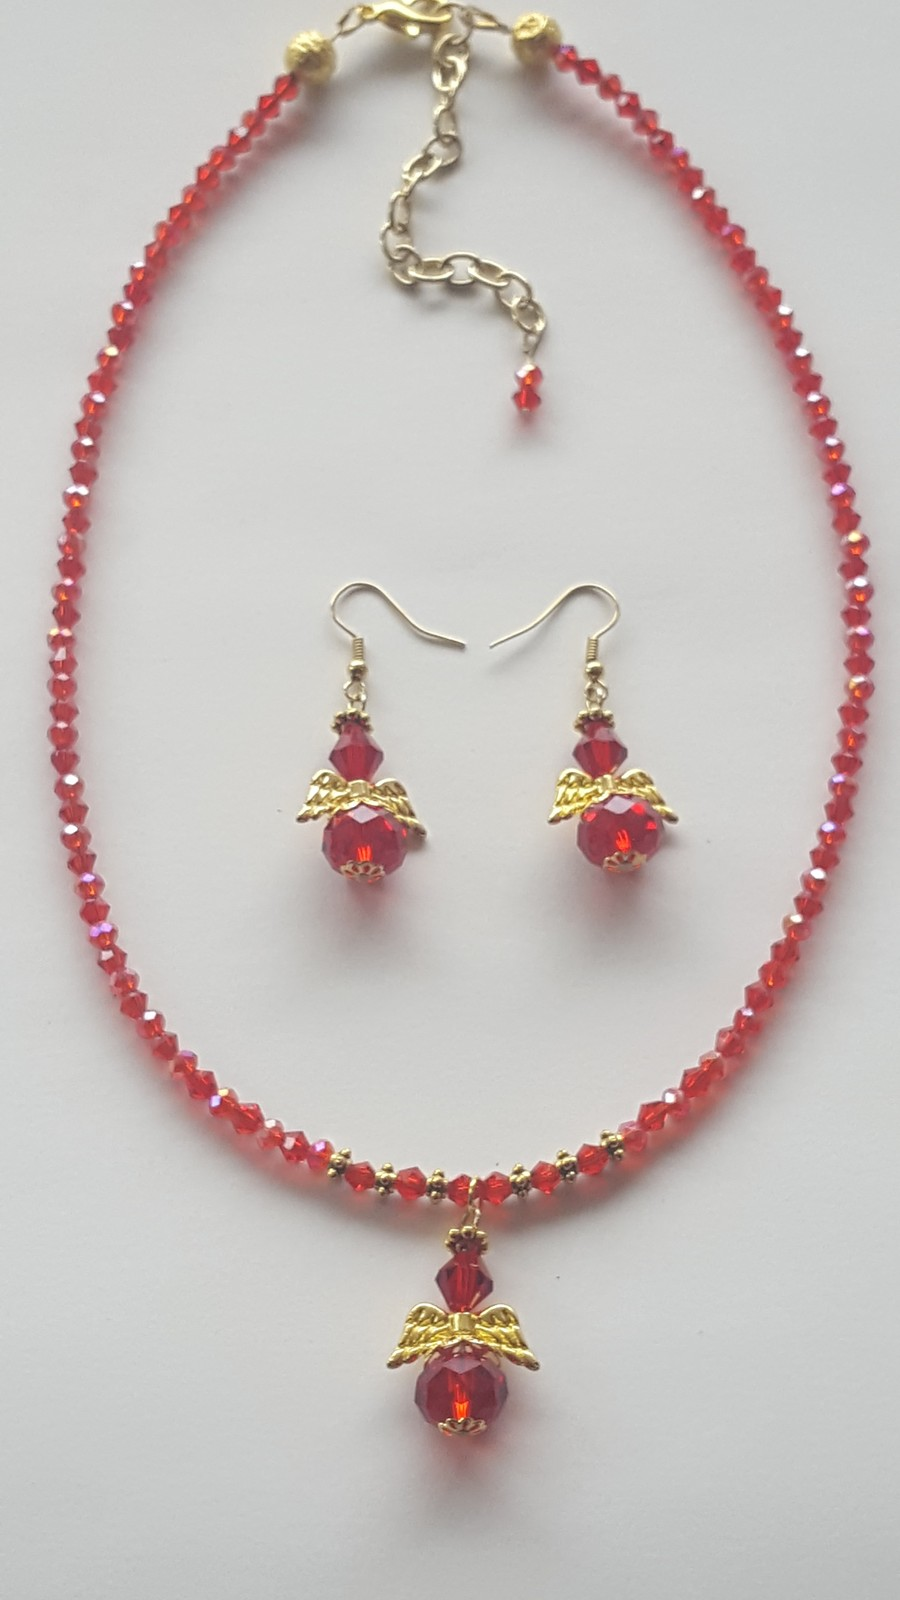 NEW Handmade Czech Red Glass, & Crystal Beaded Angel Necklace with Earrings